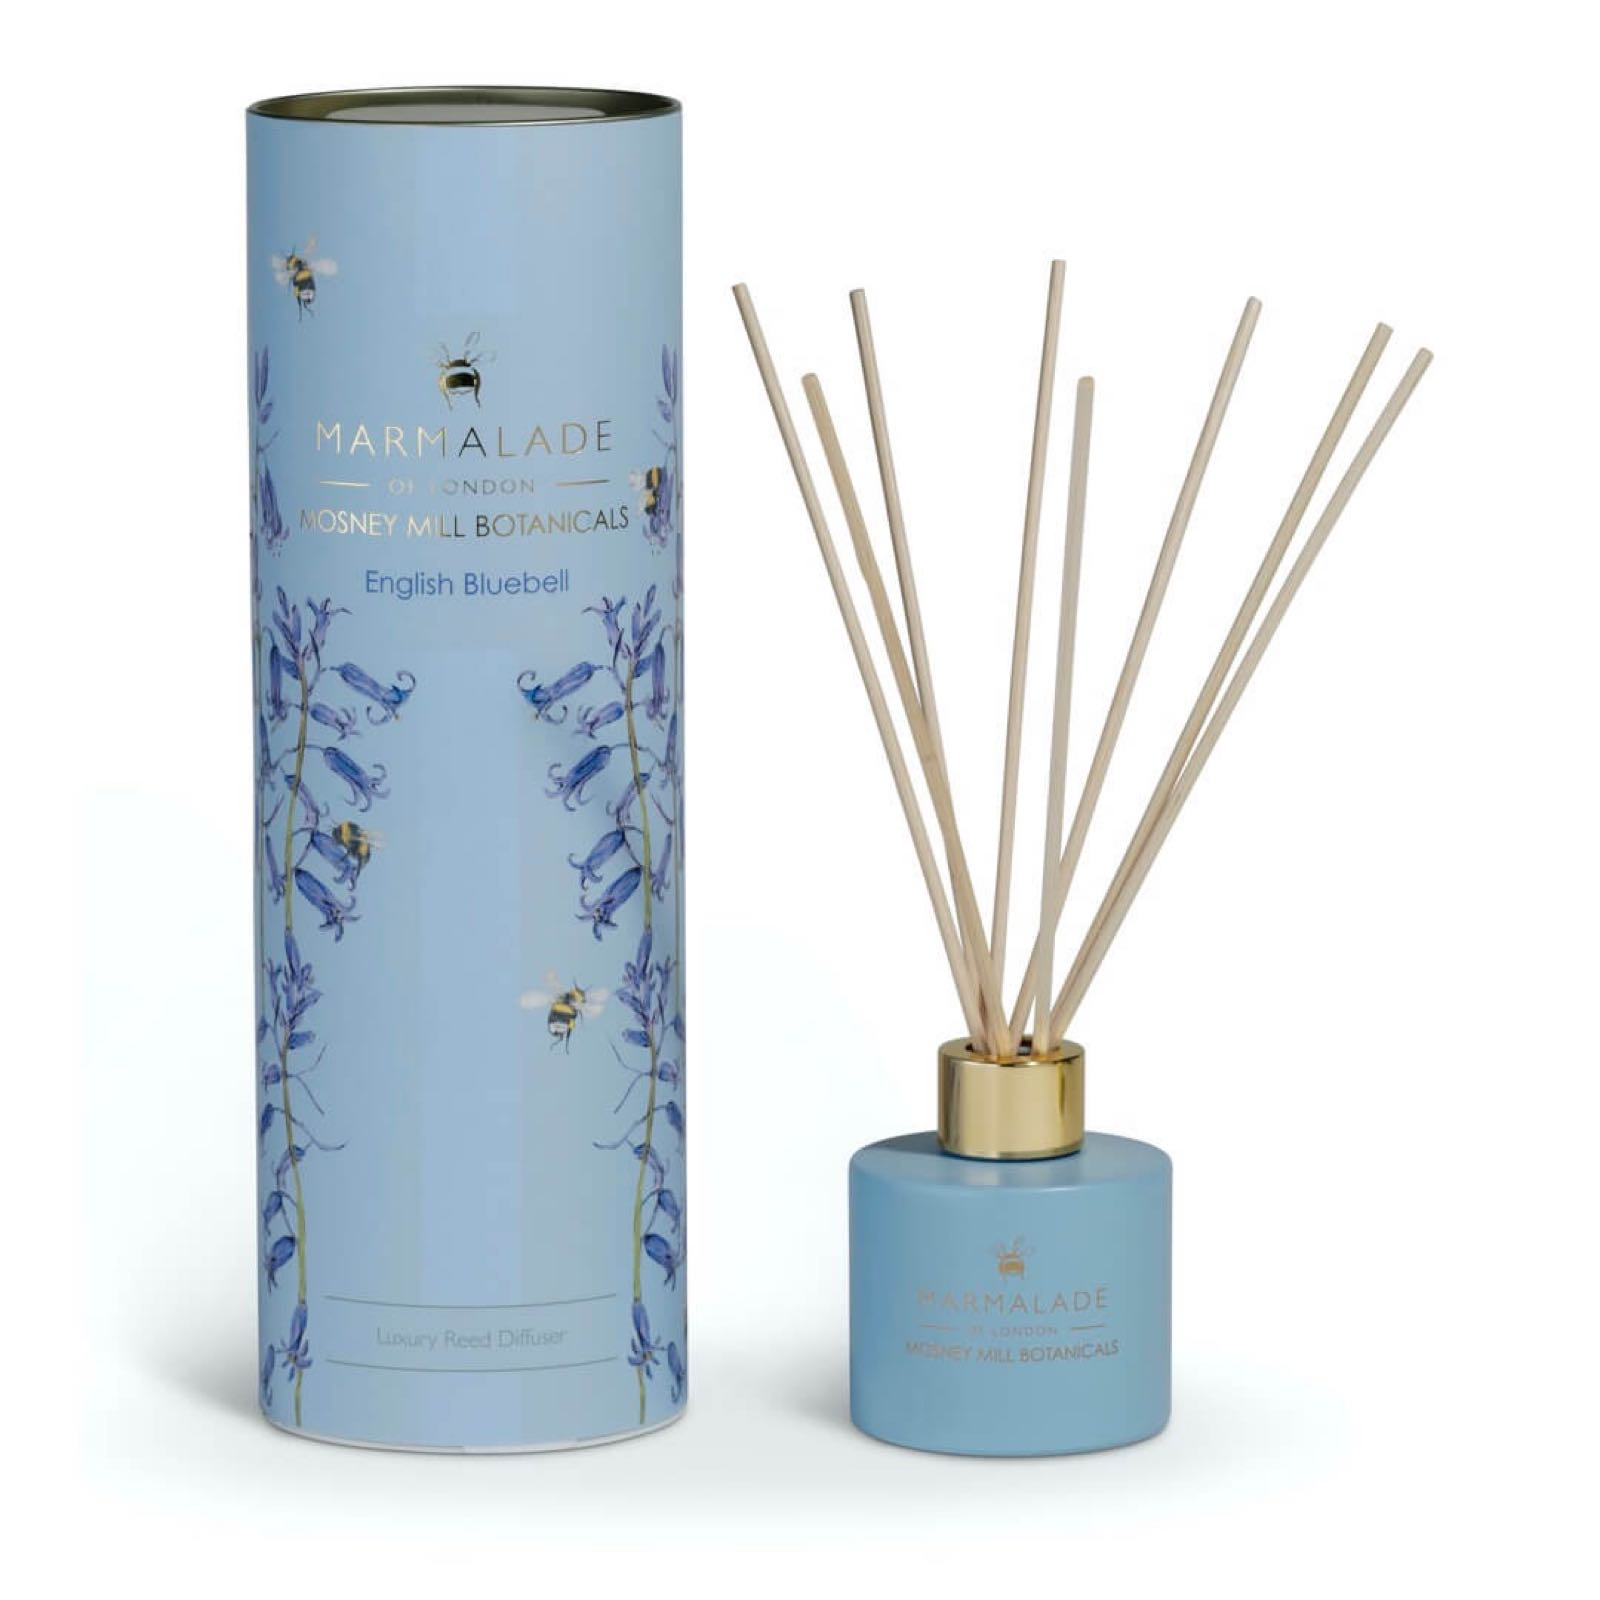 Mosney Mill English Bluebell Diffuser